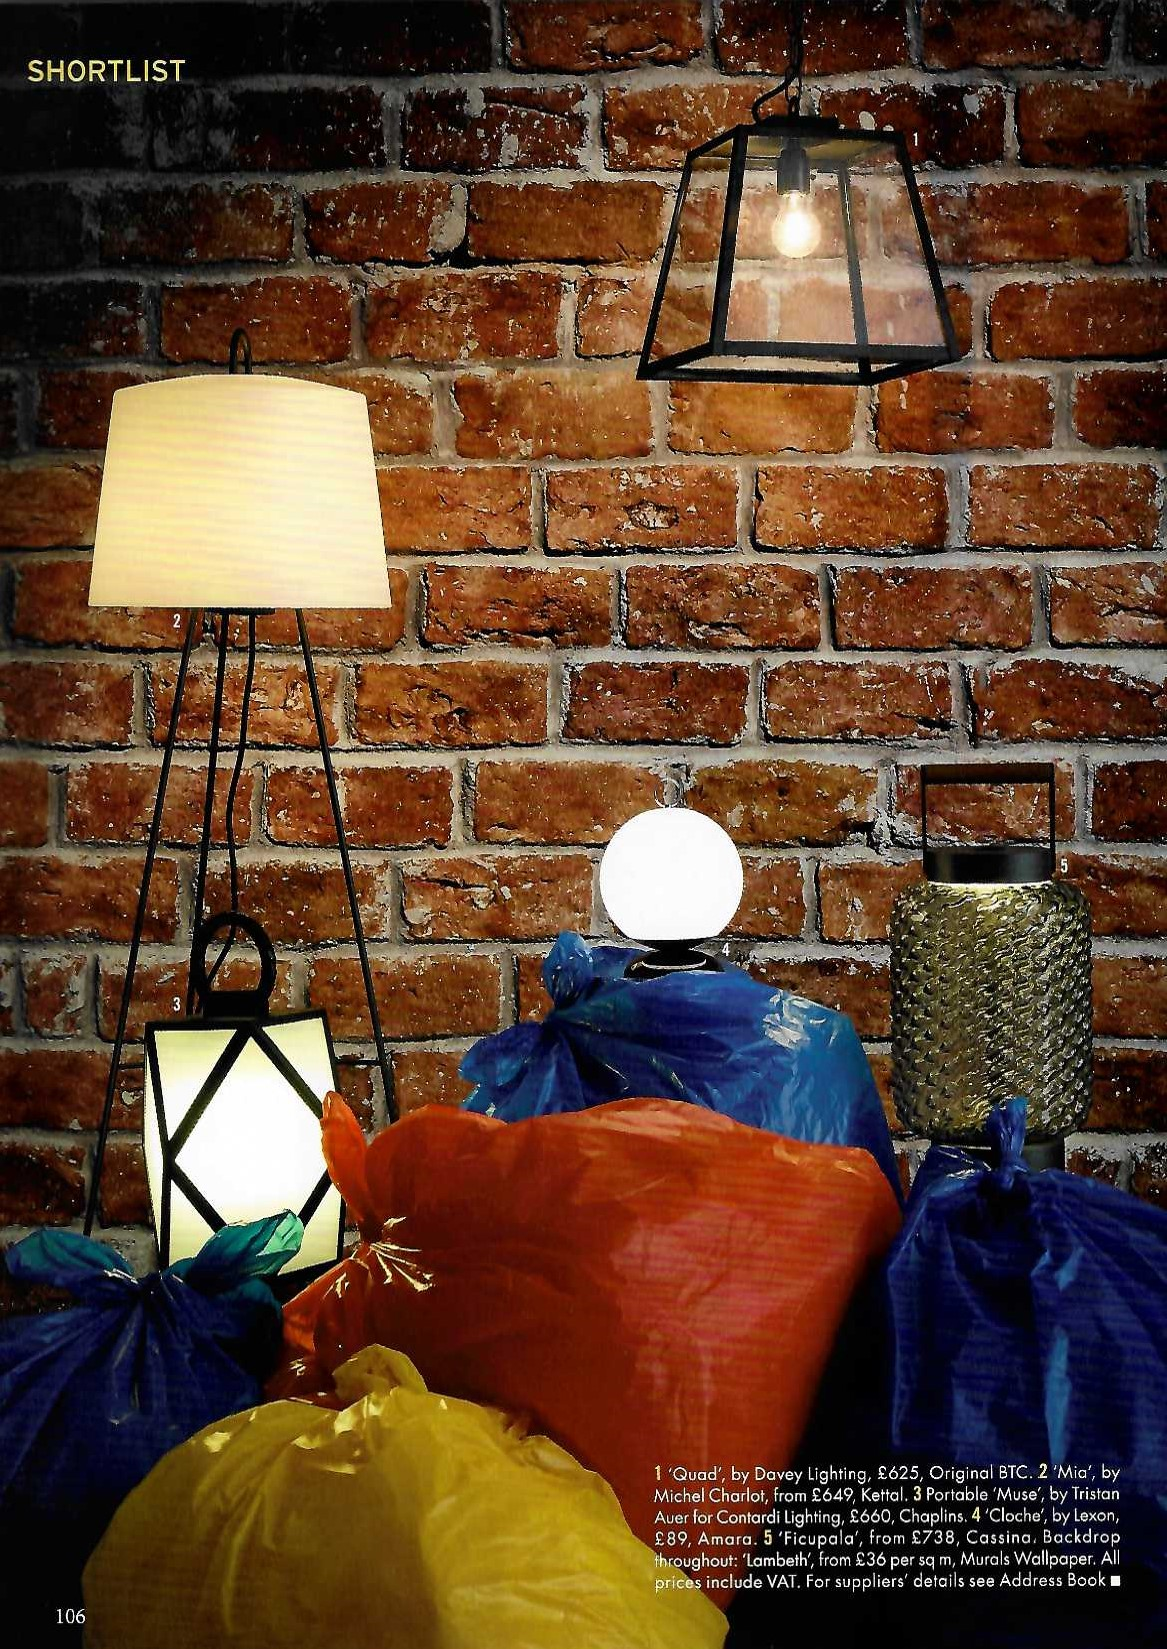 Davey Lighting's Exterior Quad pendant is the way to glow, starring in The World of Interiors's outdoor lighting edit